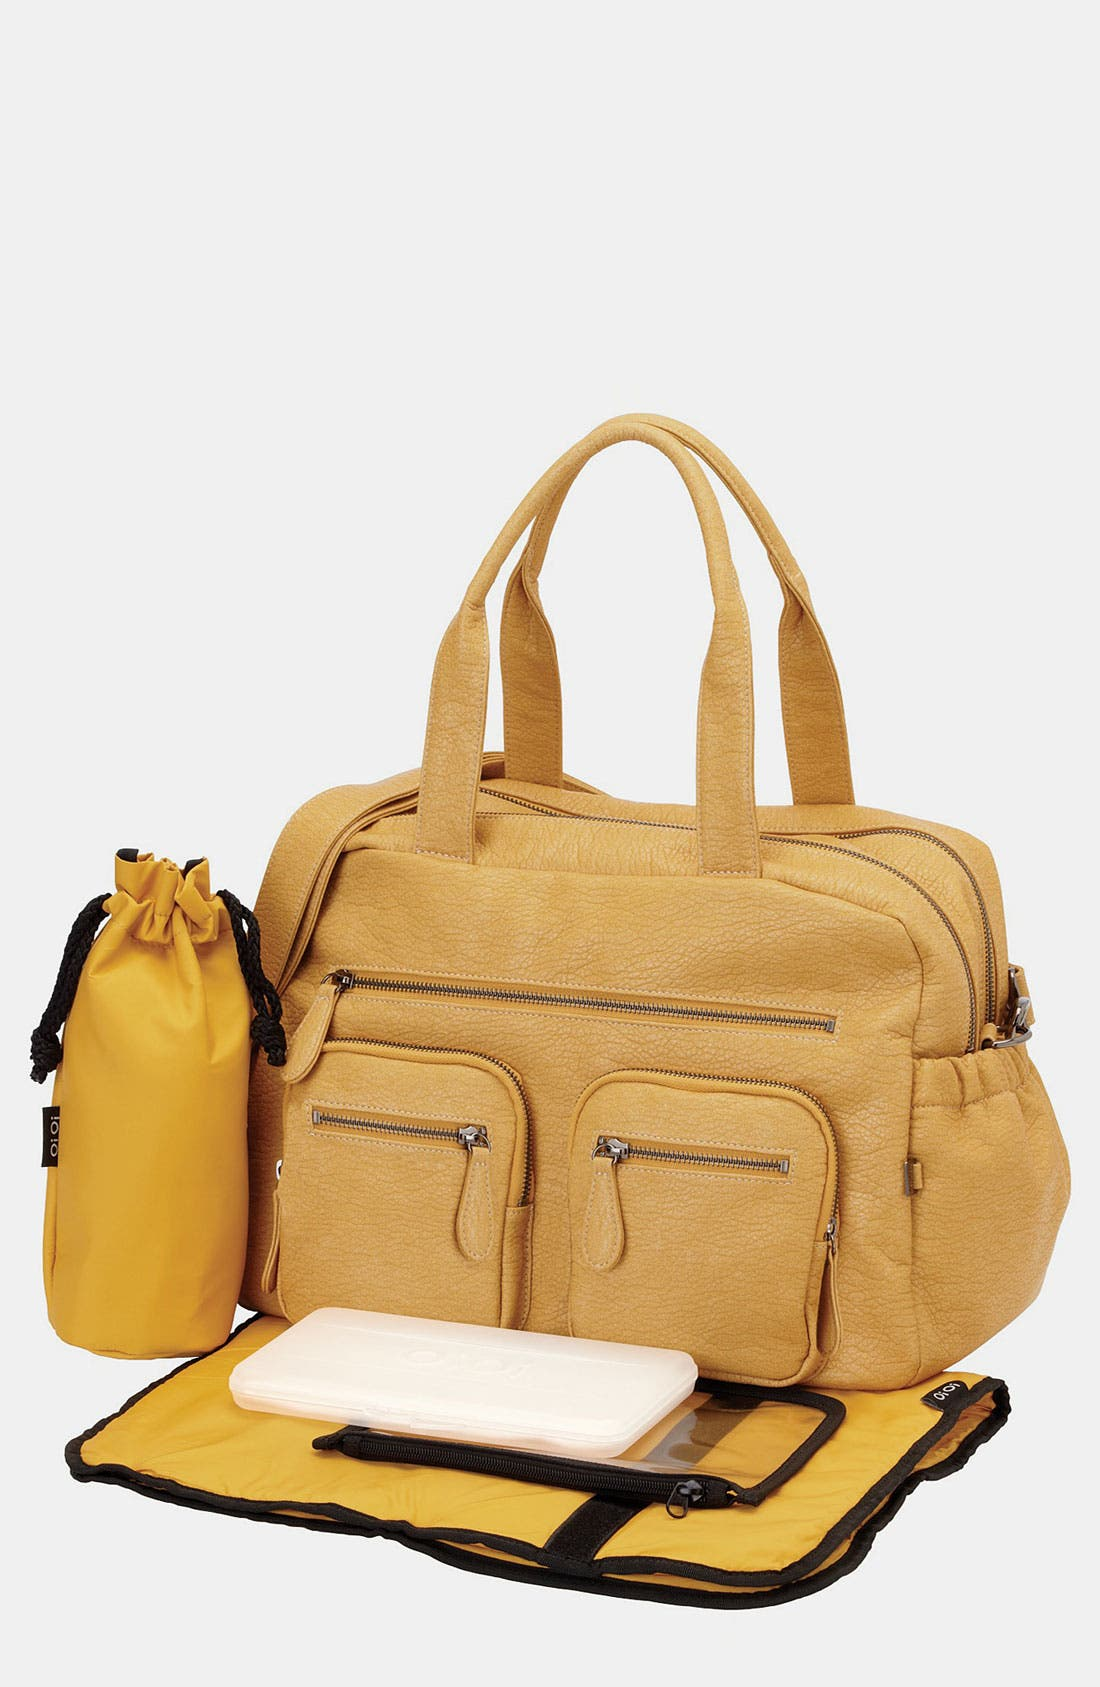 OiOi Carryall Diaper Bag